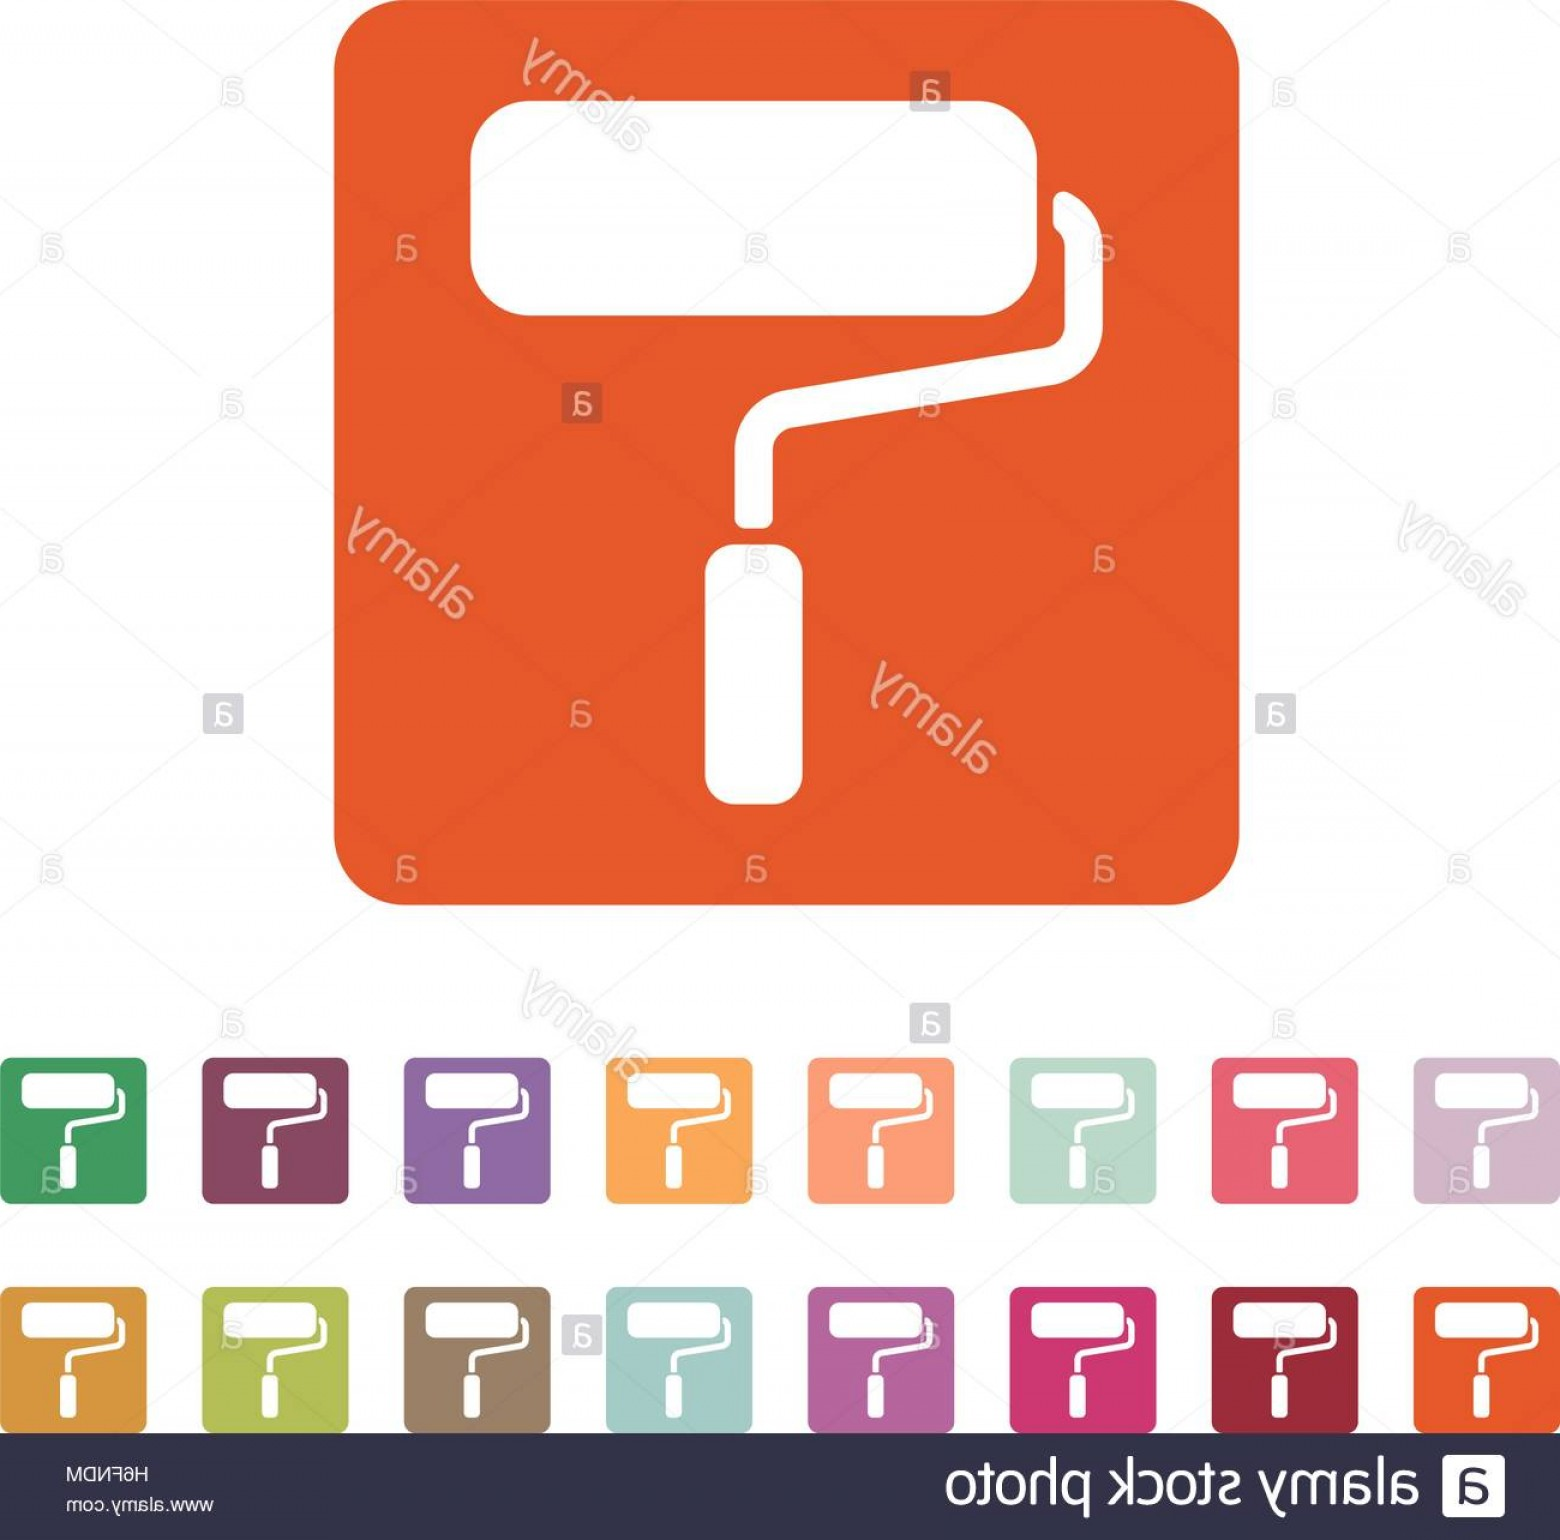 Powder Coating Vector: Stock Photo The Paint Roller Icon Decorating And Painting Repair Symbol Flat Vector